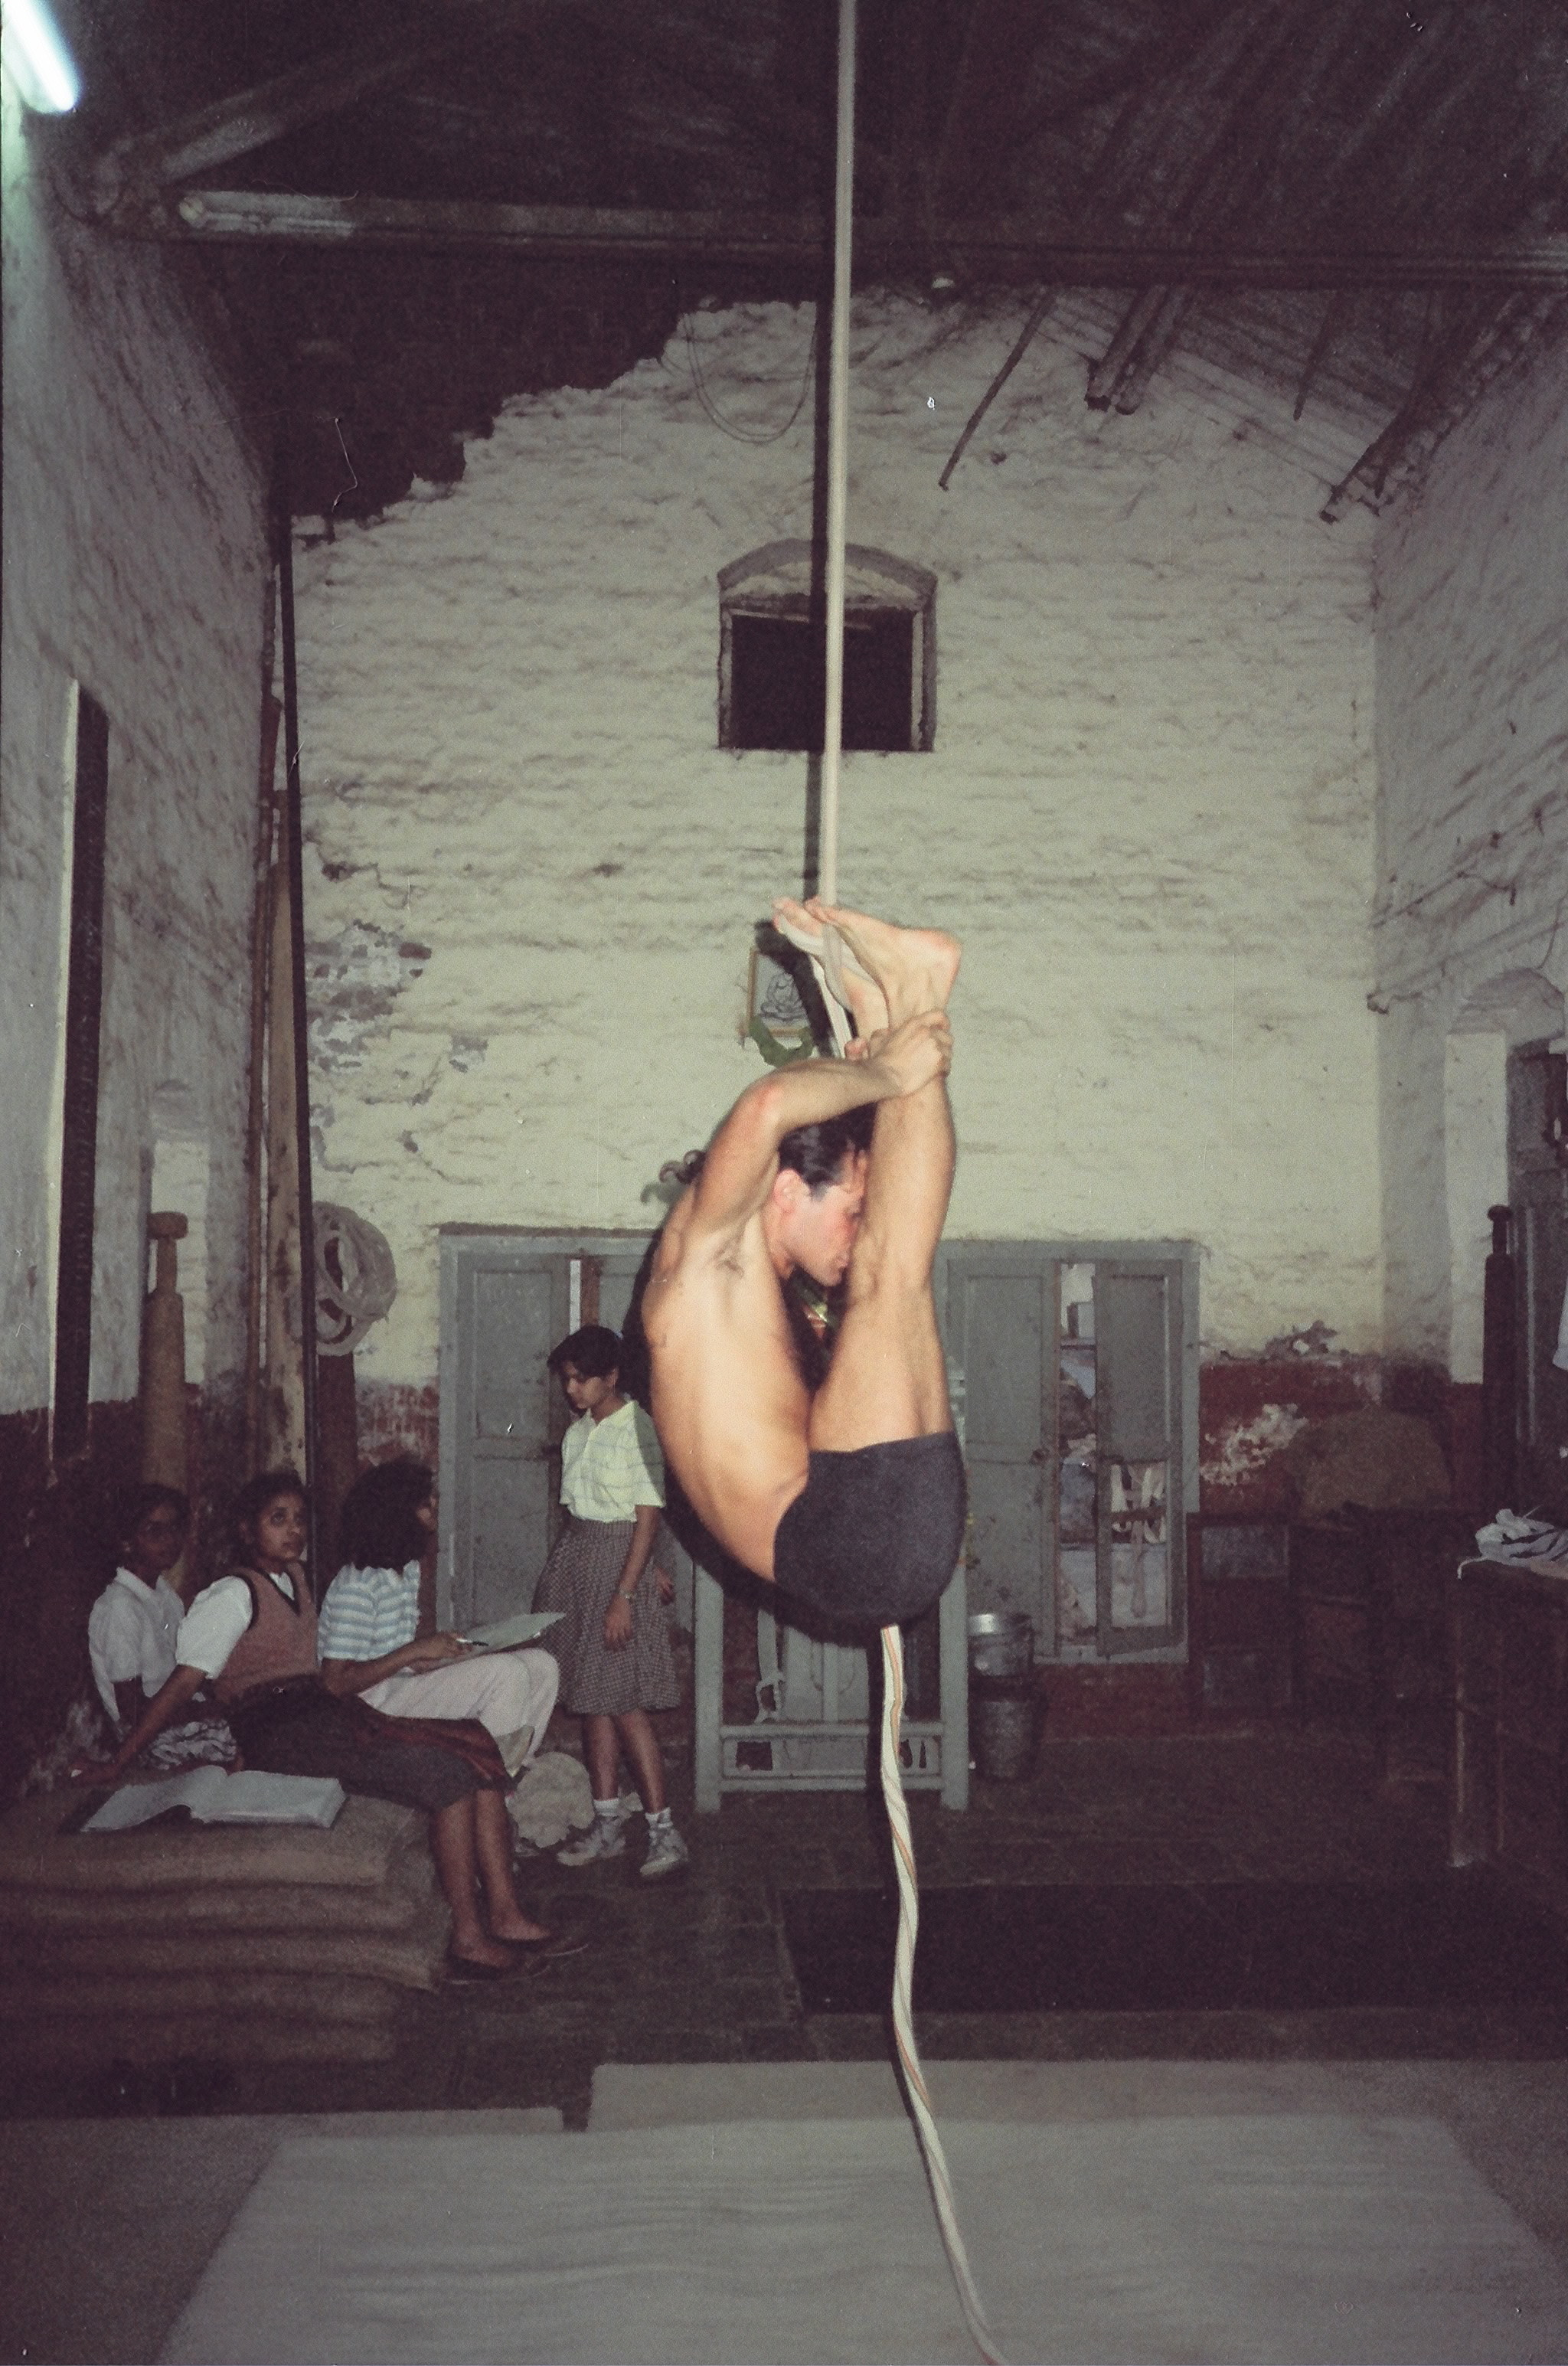 Simon Borg-Olivier practicing Urdhva mukha pascimotanasa on rope Mallakhamb in Pune, India, 1988